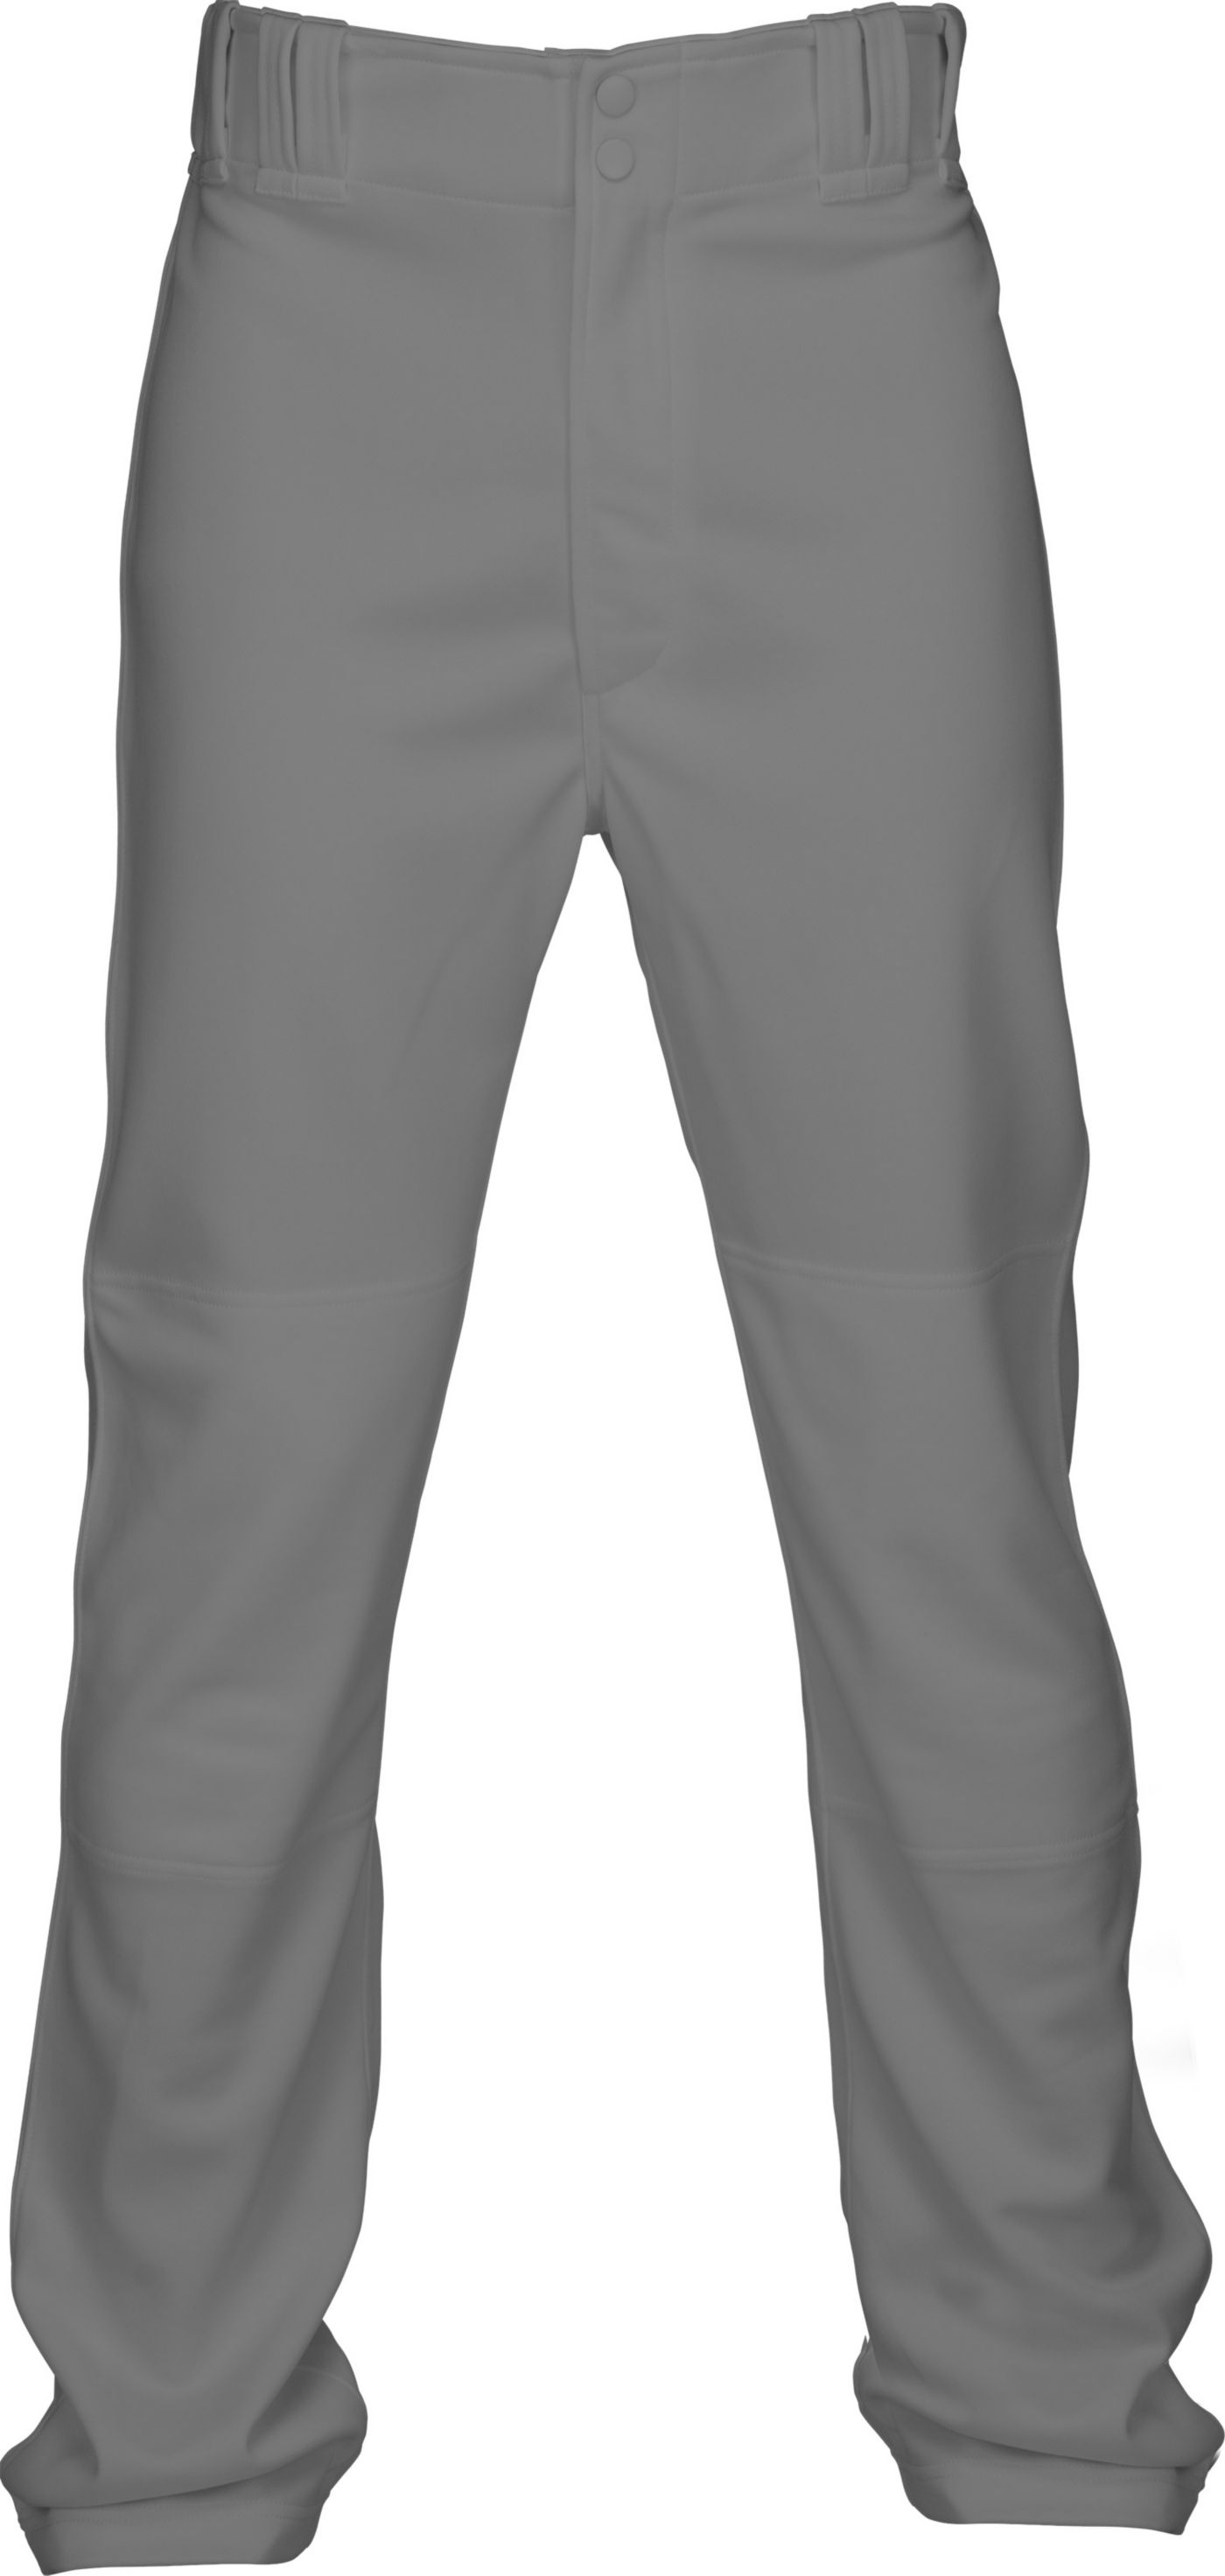 Marucci Men's Double Knit Baseball Pants